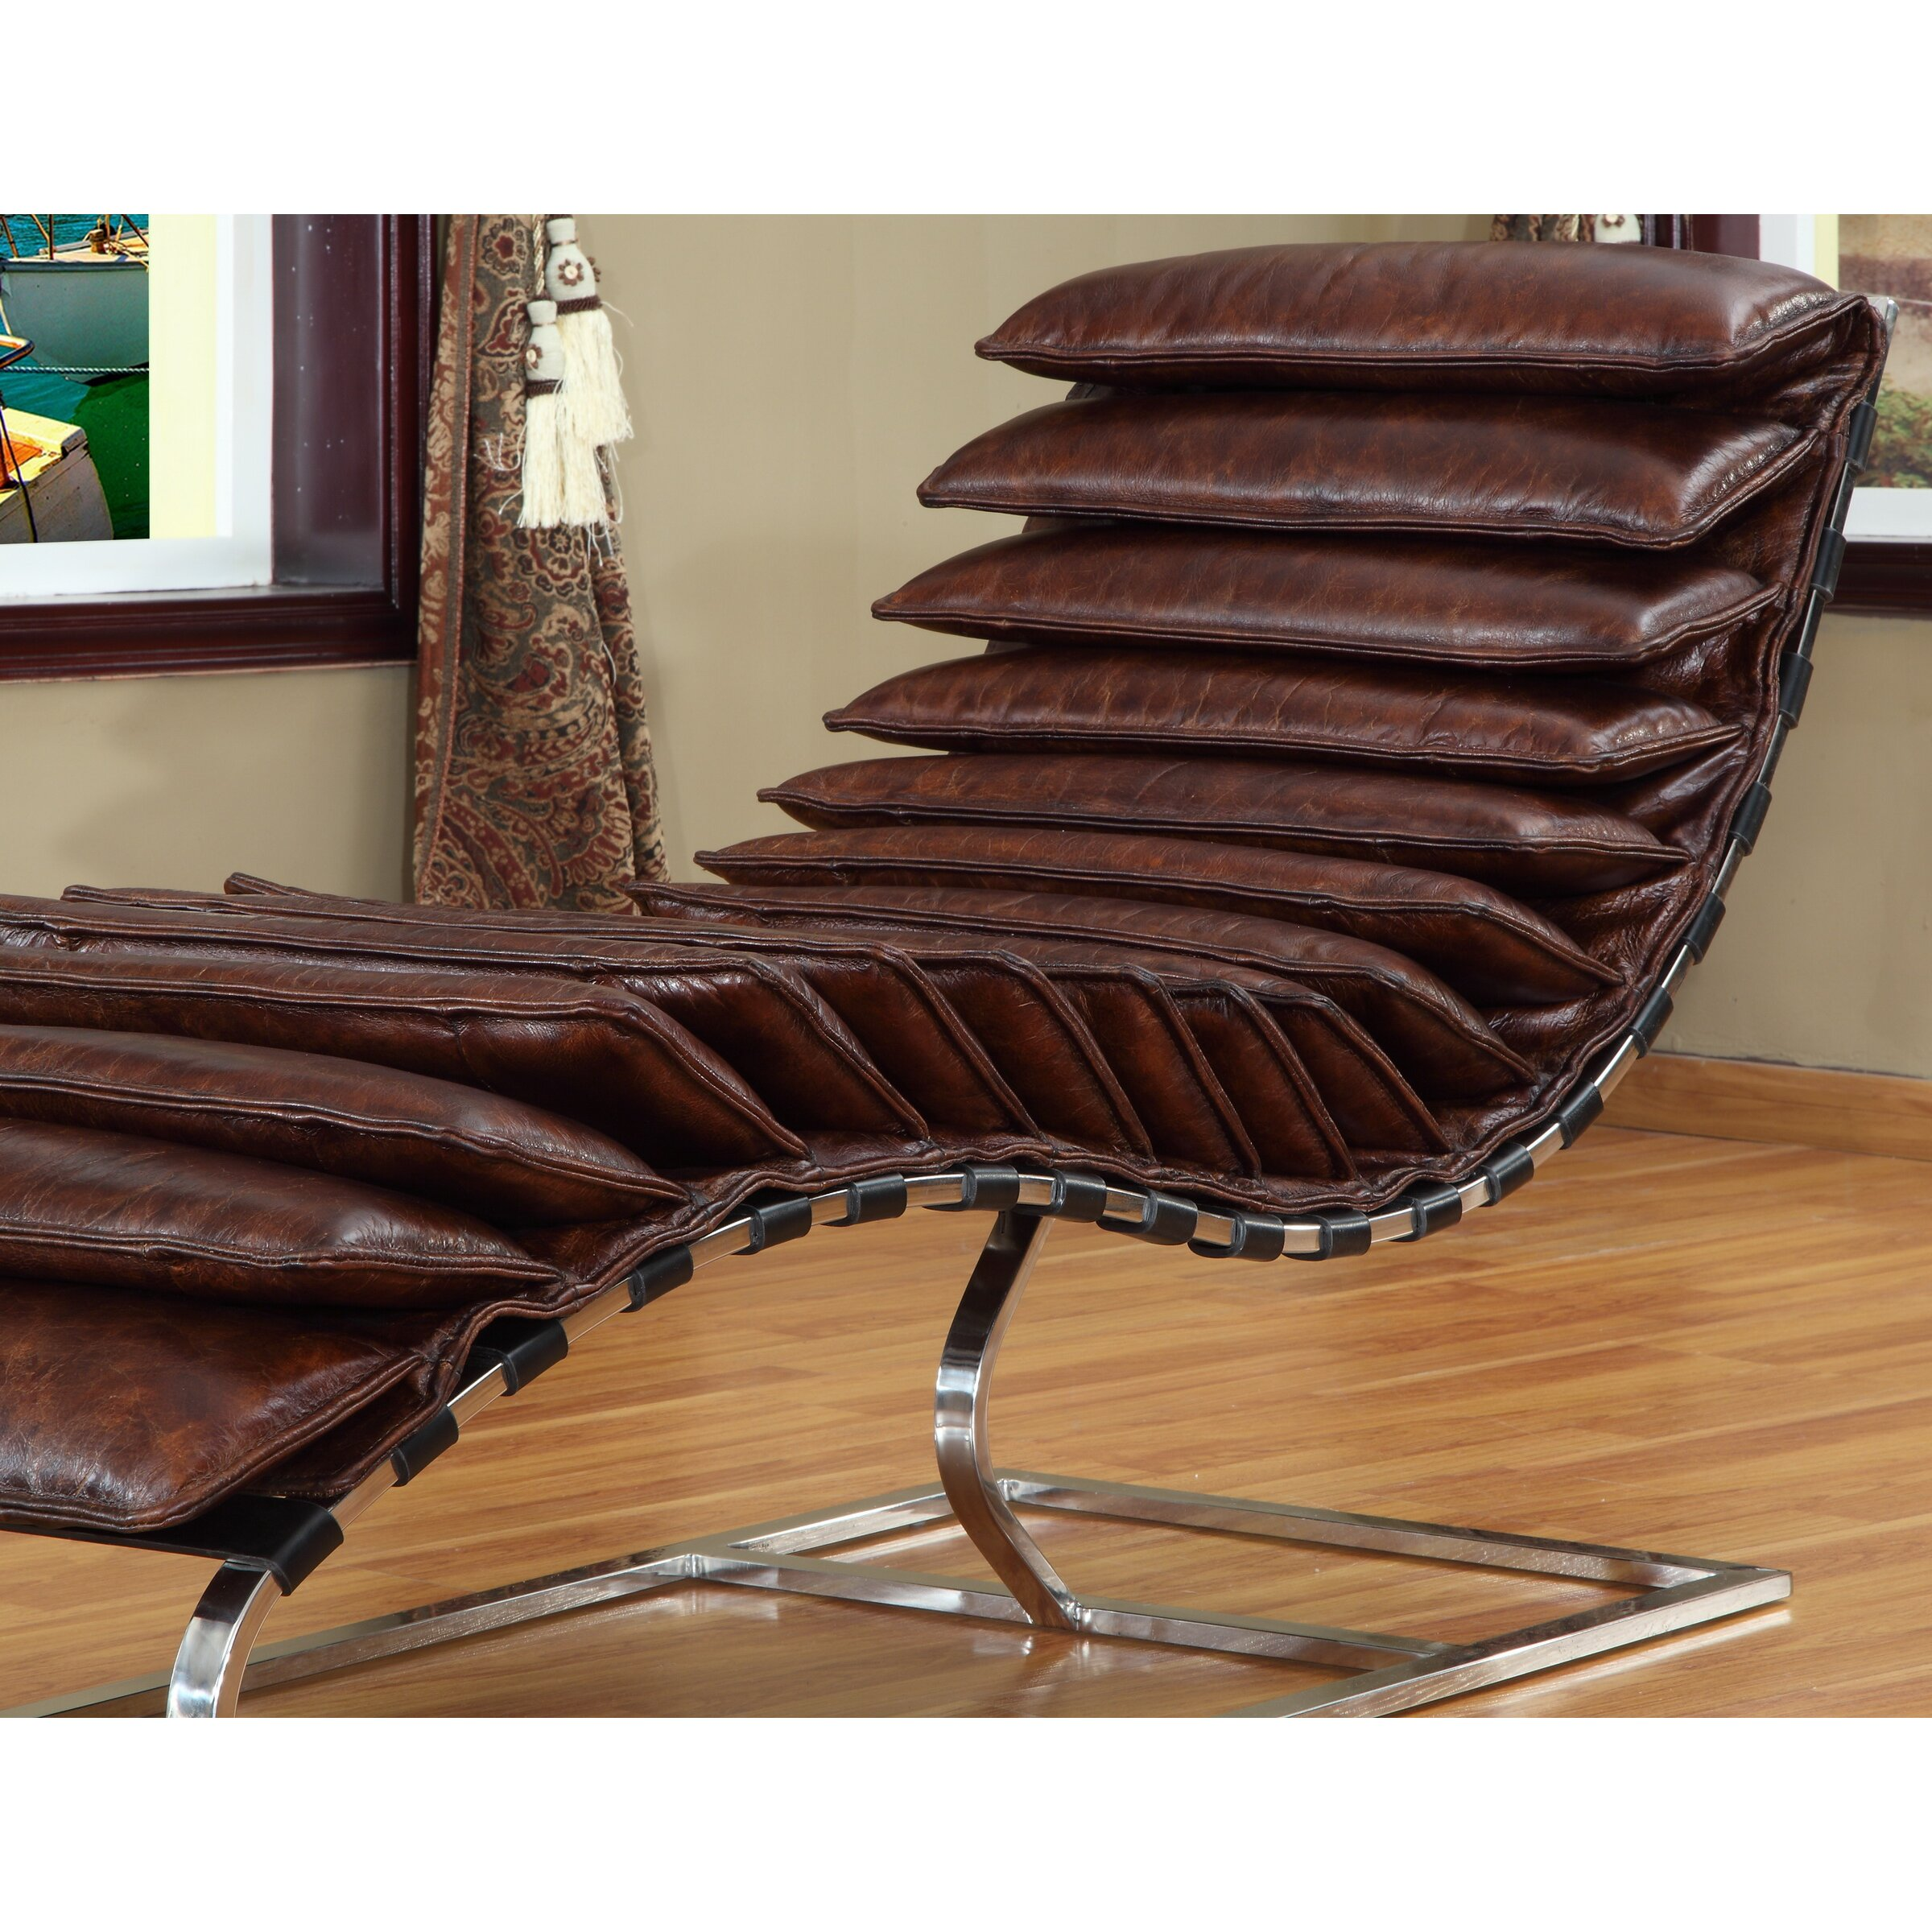 Rino leather chaise lounge wayfair for Chaise leather lounges